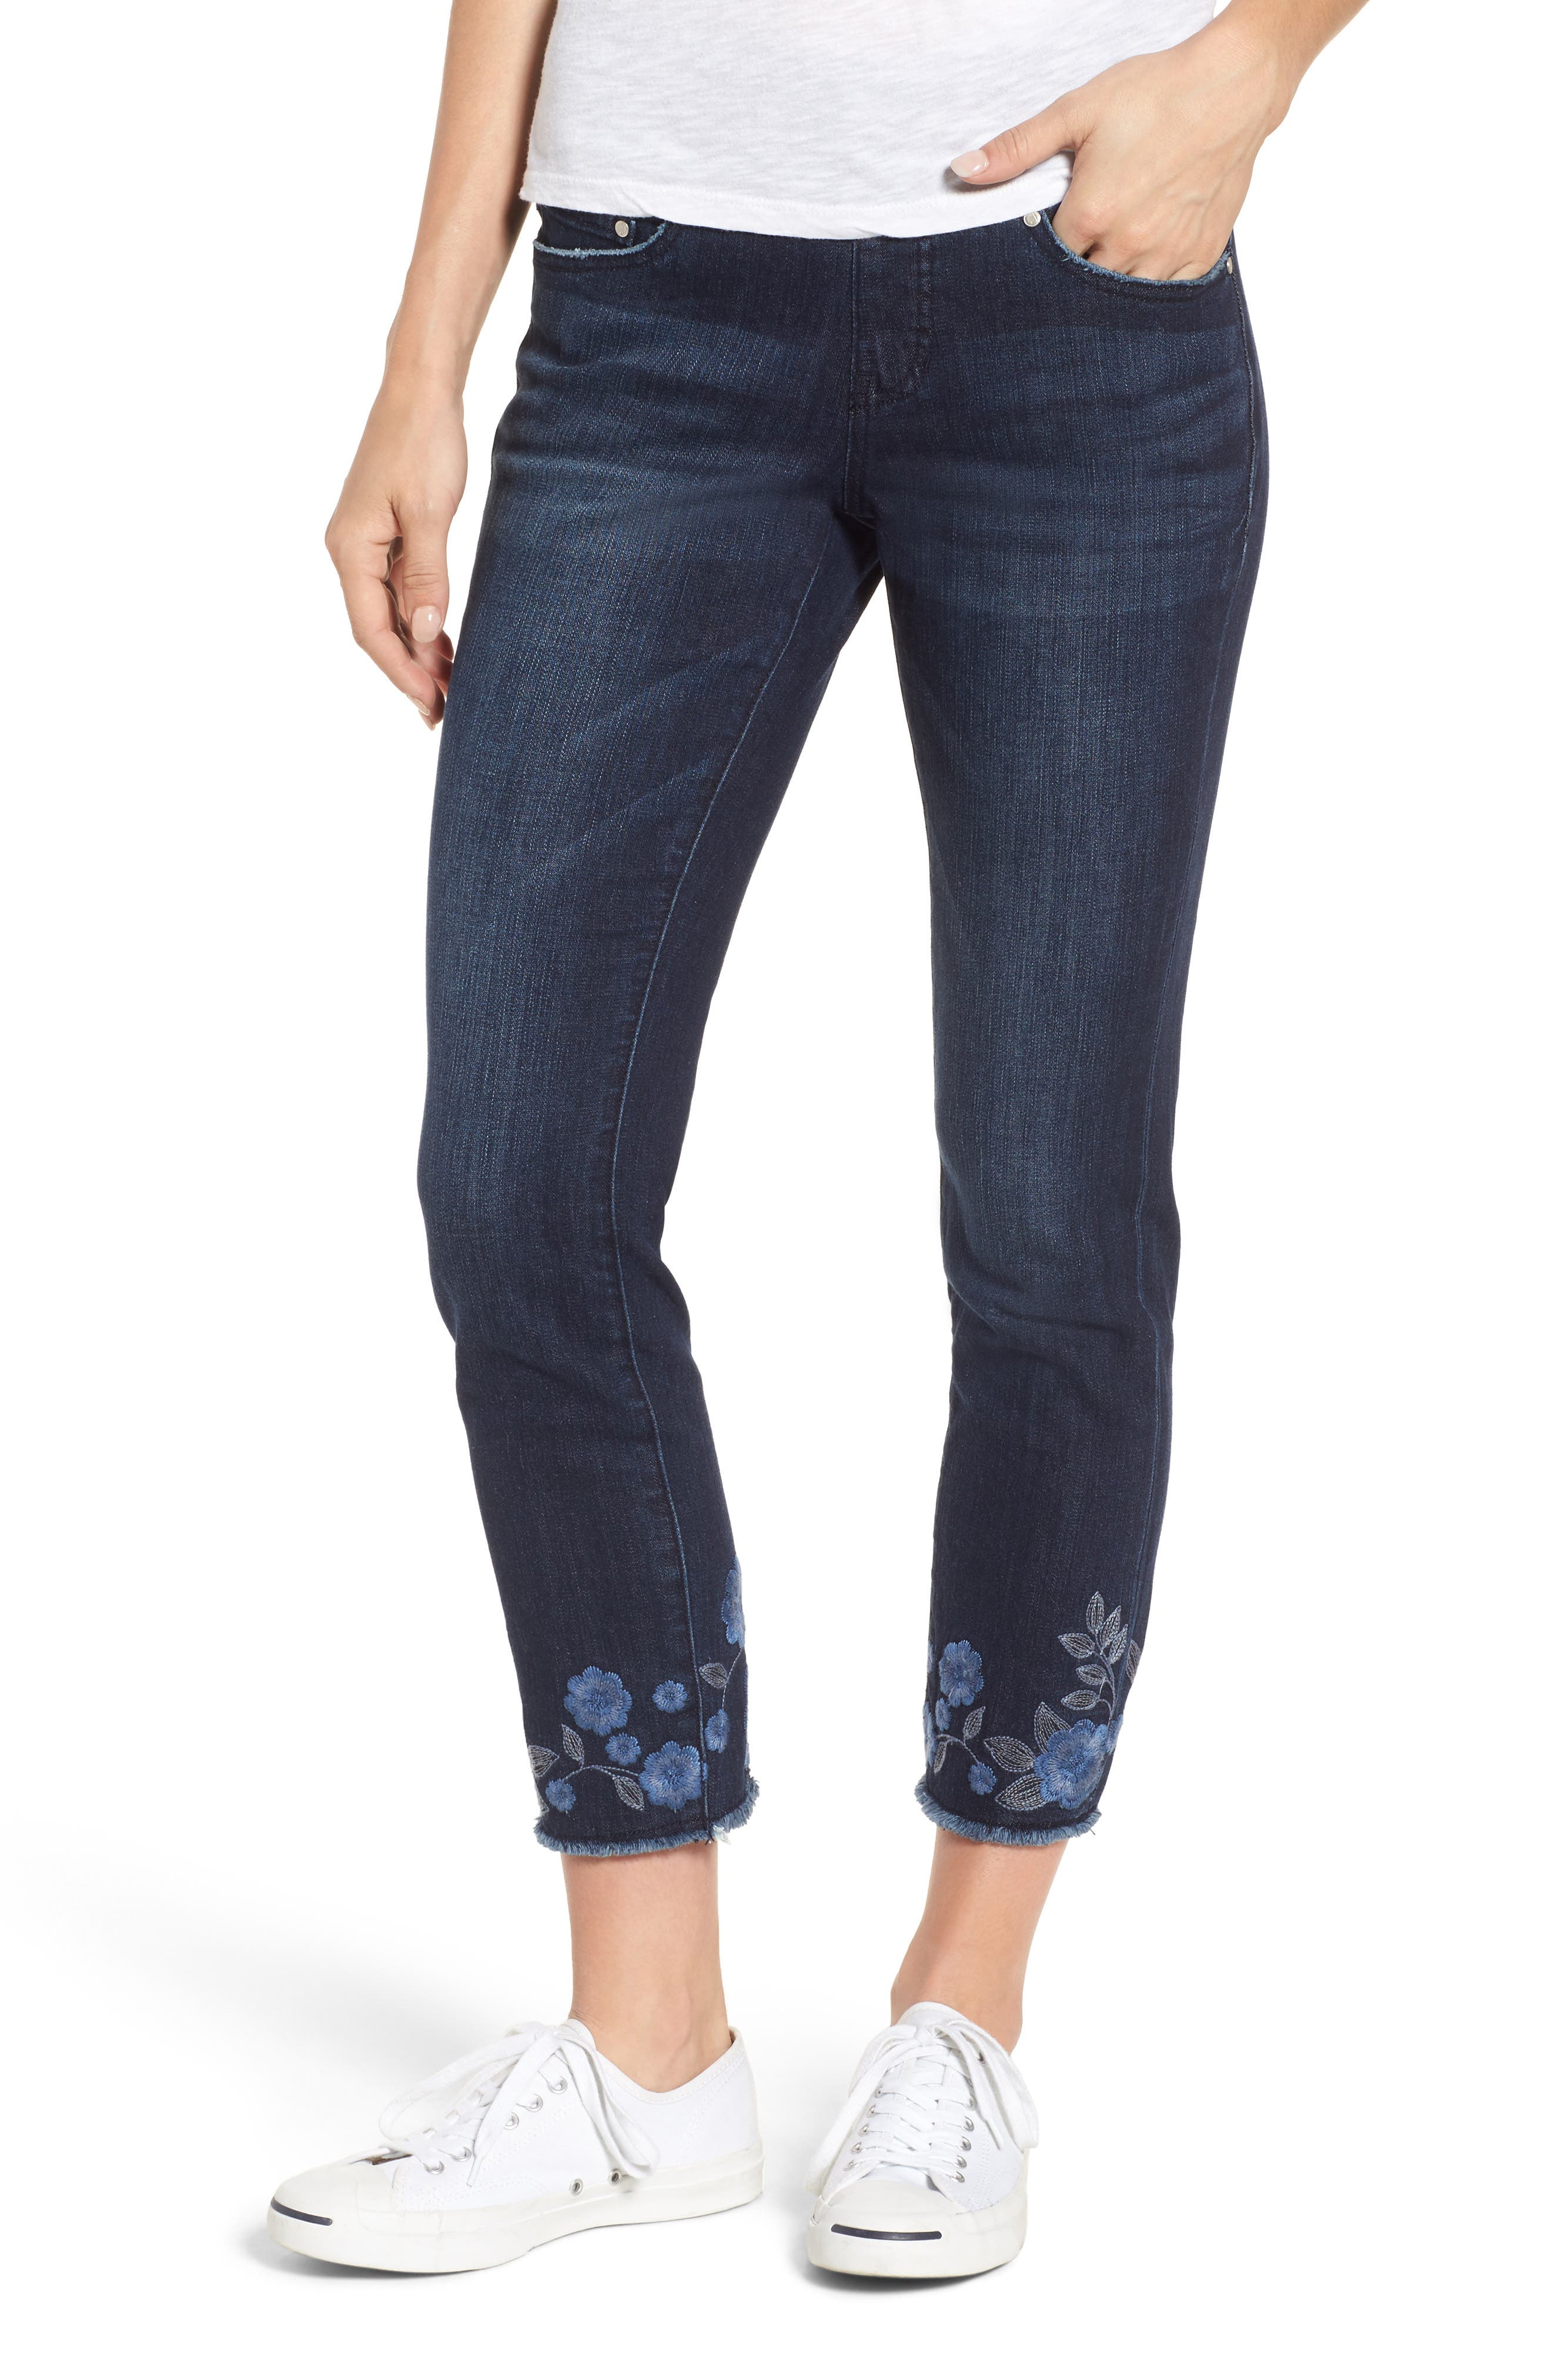 Amelia Embroidered Slim Ankle Jeans,                         Main,                         color, 402